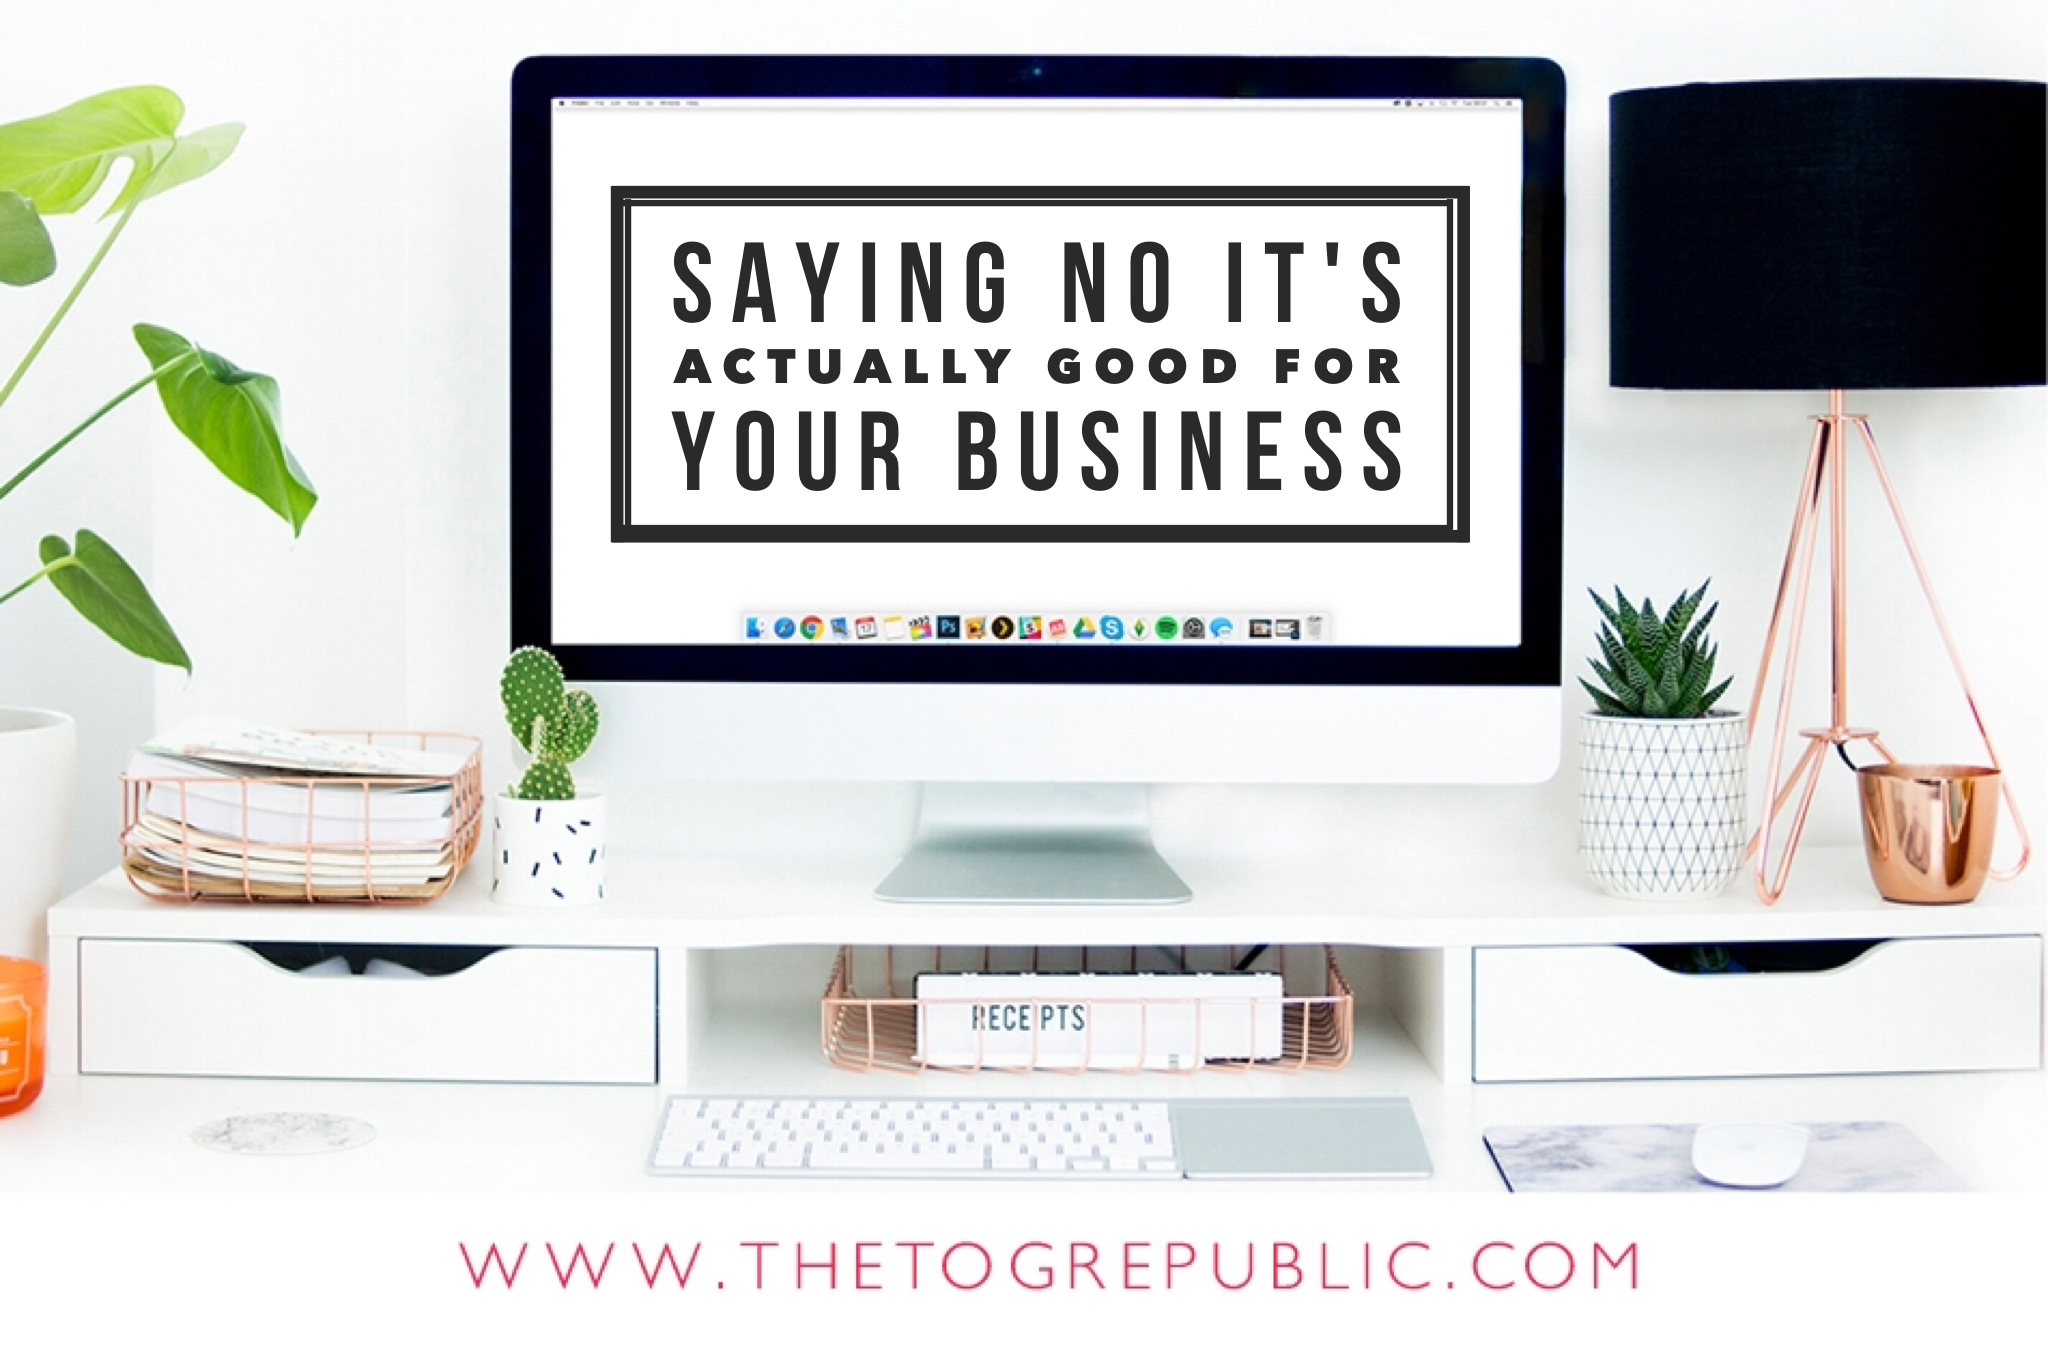 Saying no it's actually healthy for your business! Let me tell you why. http://thetogrepublic.com/blog/saying-no